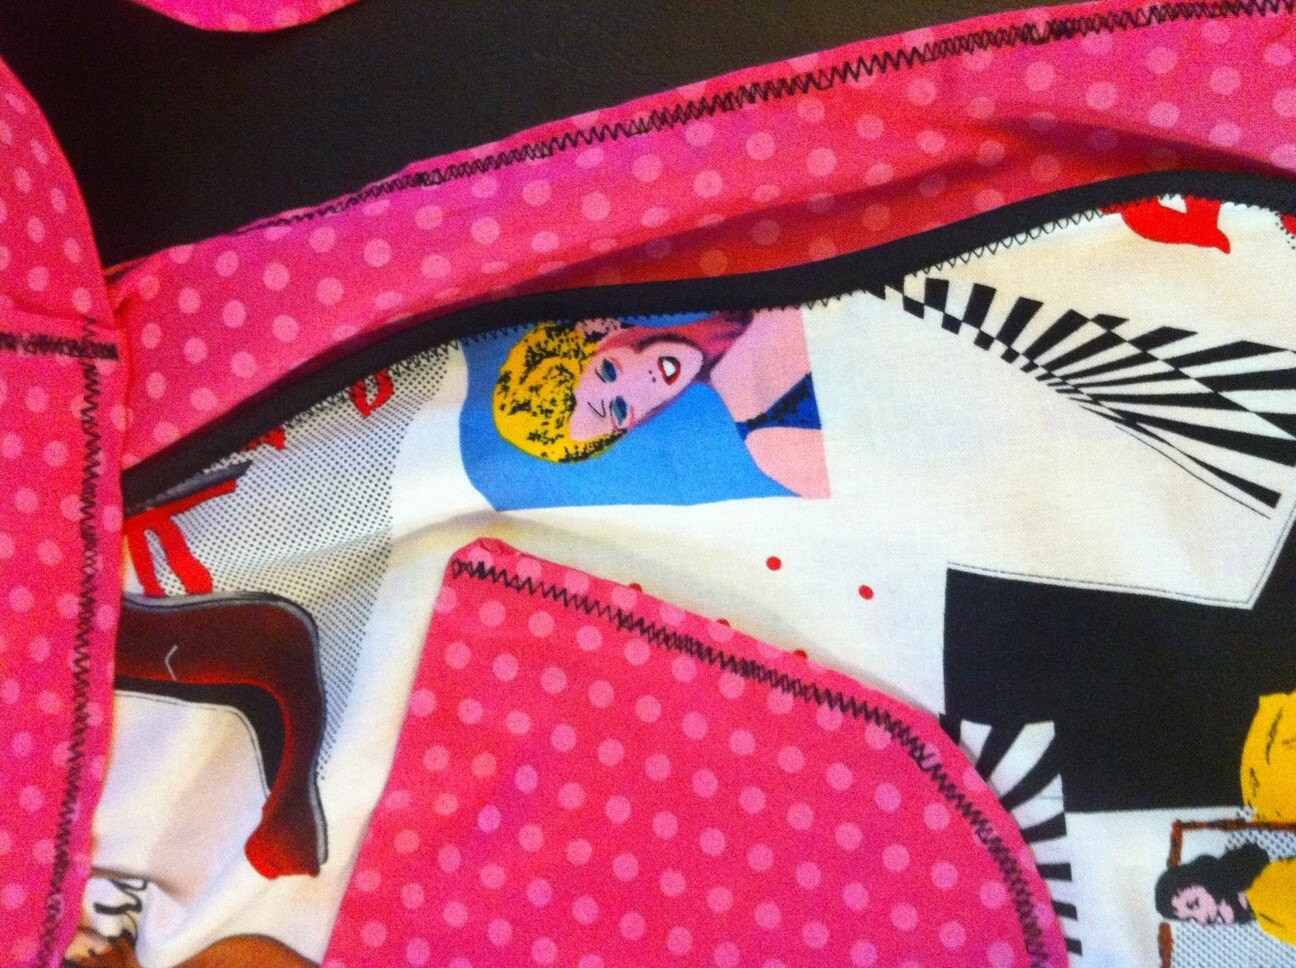 Fashionista half apron for the fashion minded domestic goddess polka dot pin-up